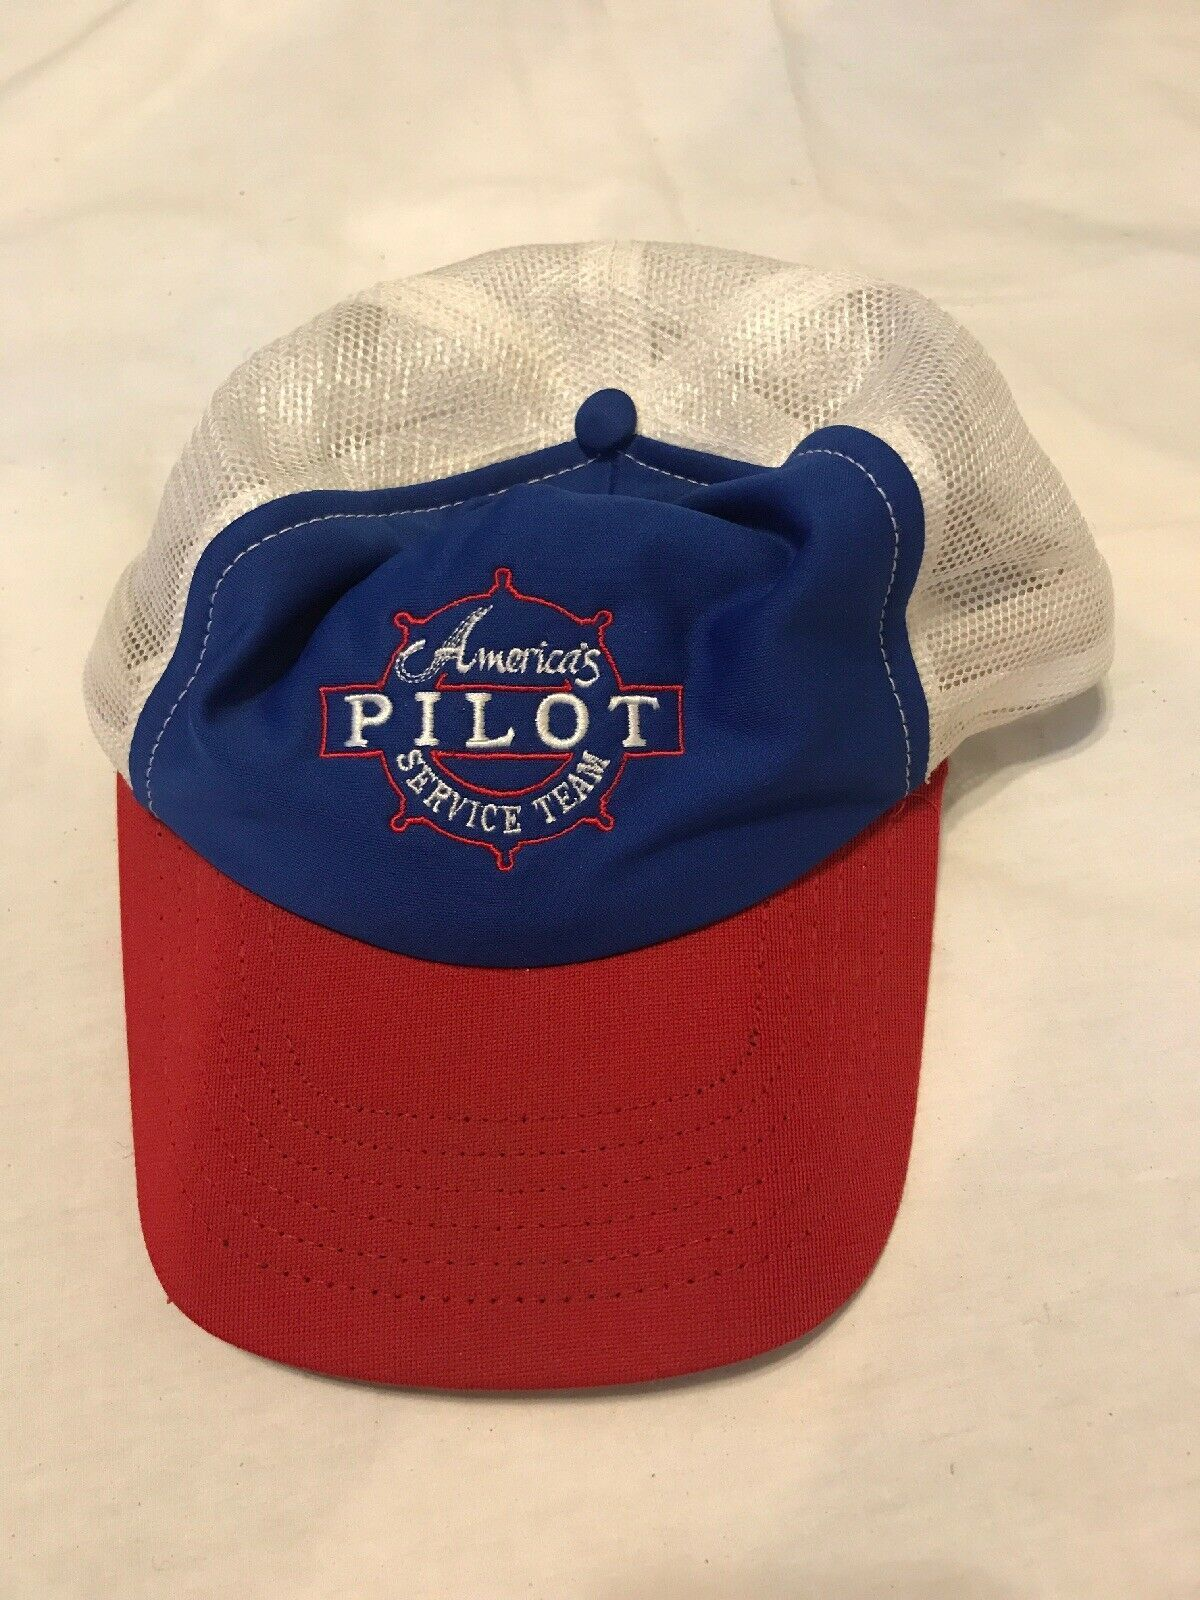 Primary image for VTG 80s Americas Pilot Service Team Trucker Hat Cap Union Made in USA Airplanes